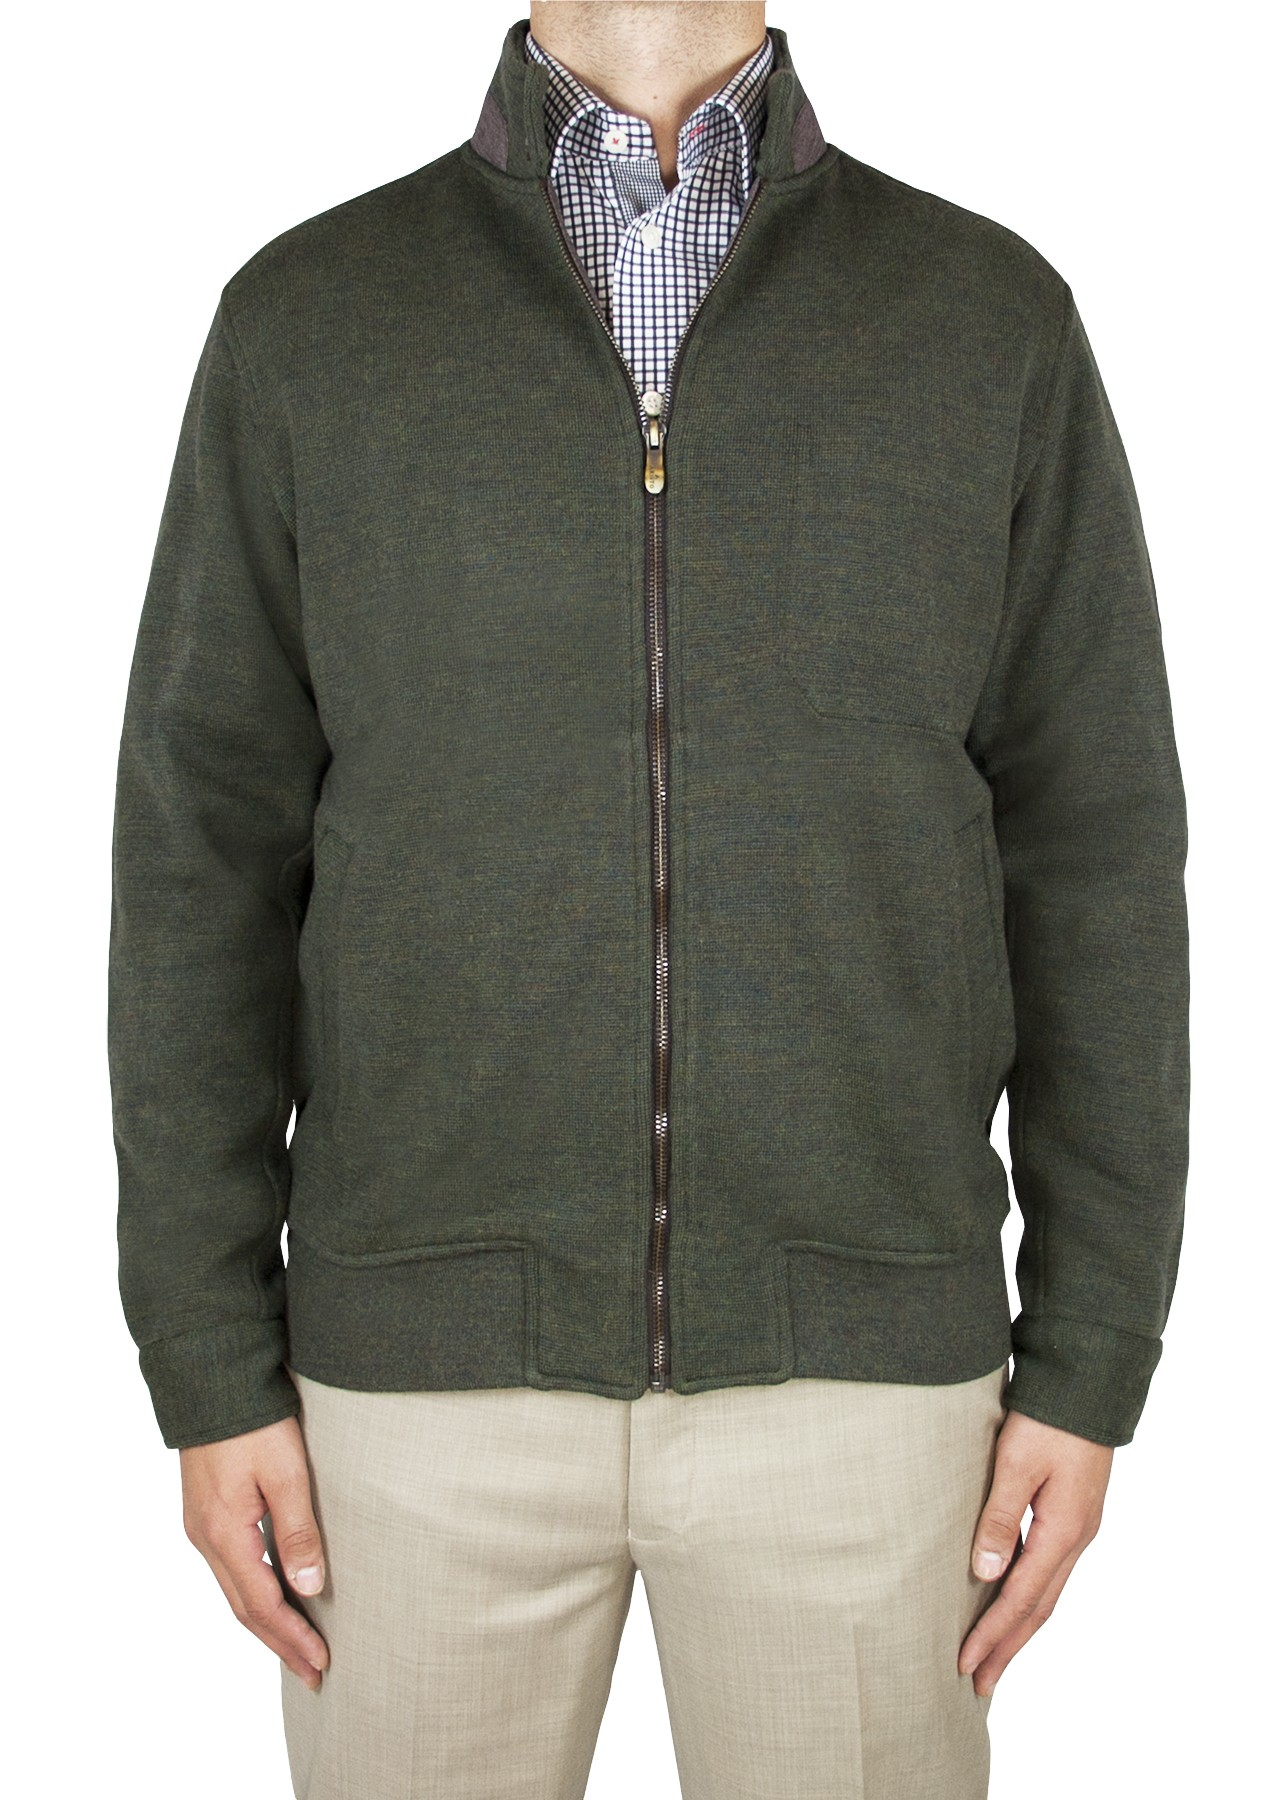 "Aristo 18 ""Heath"" Full Zip Knit Jacket - Wool/Cotton"